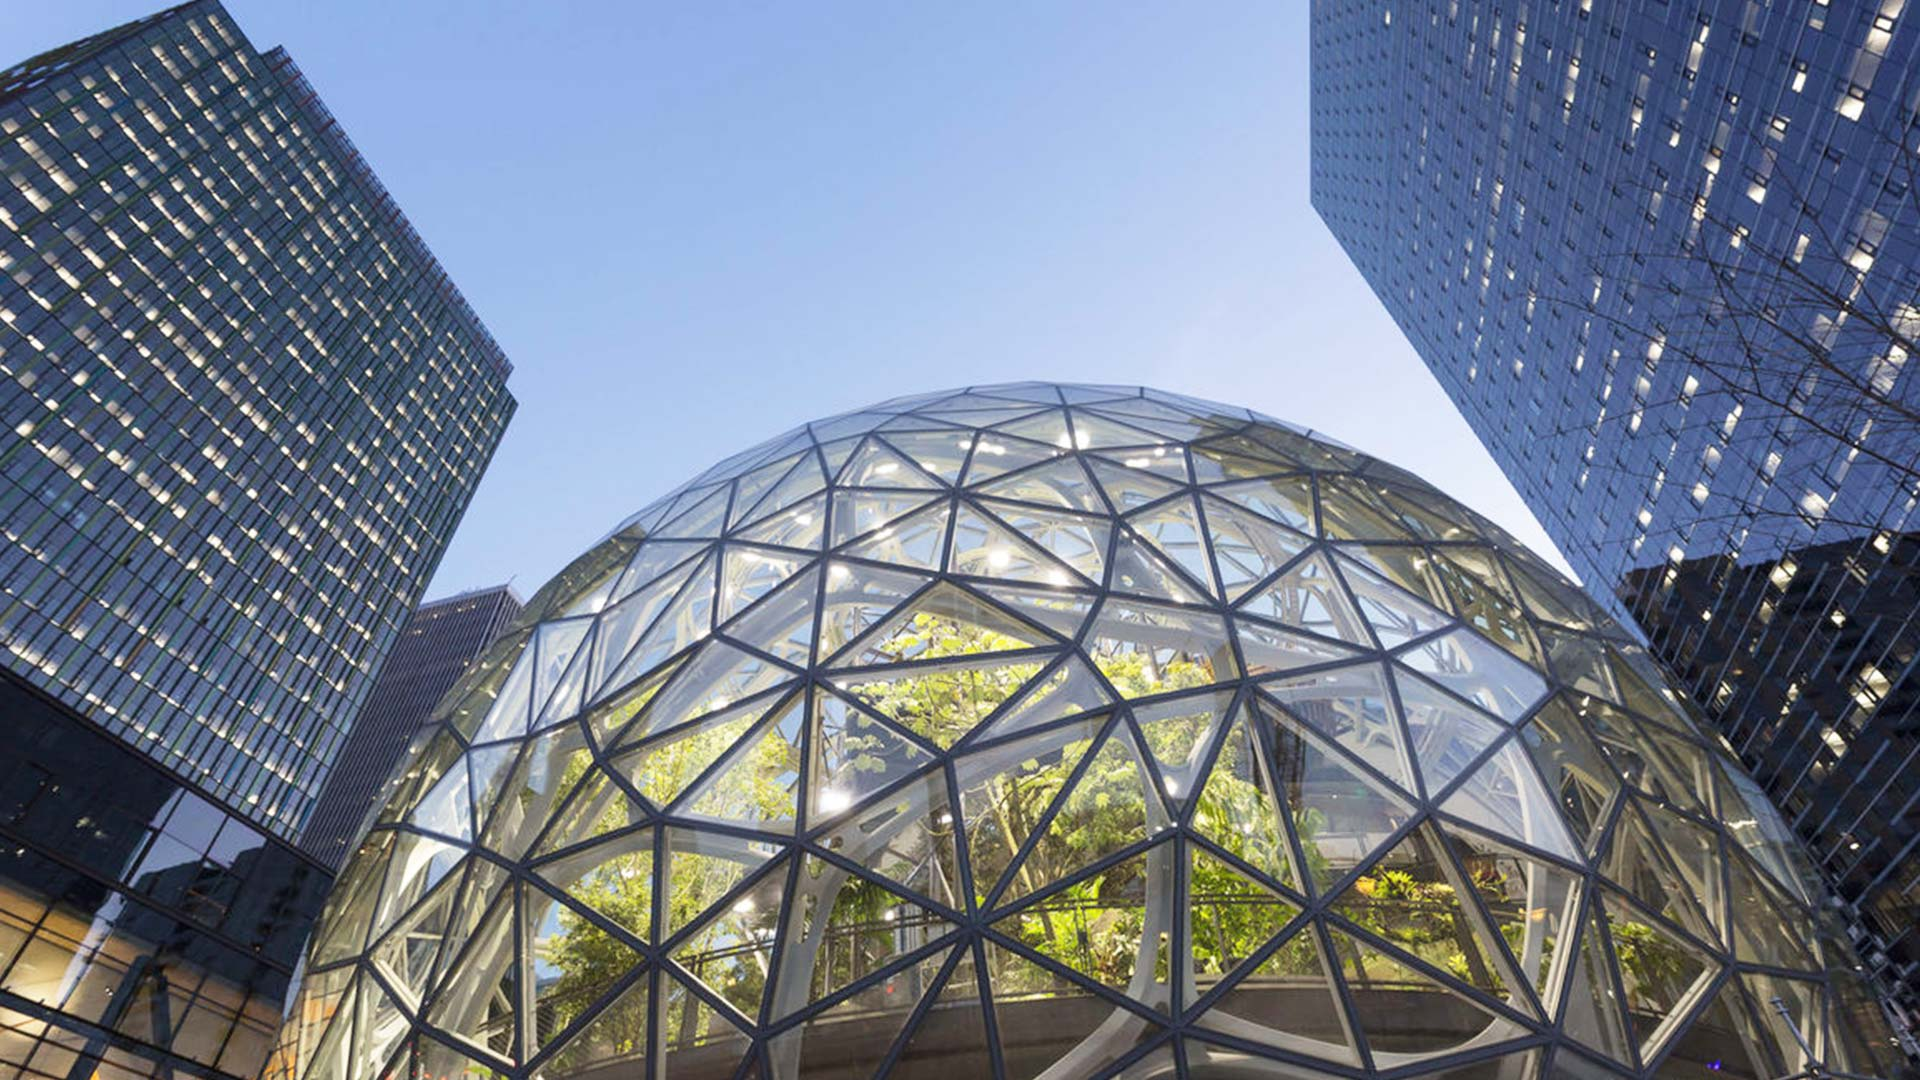 From the outside, the spheres resemble a glass-and-steel sculpture of a triple-scoop sundae. The 30-metre-high transparent balls will accommodate 1800 Amazon employees, who will be surrounded by a wilderness of plant life that includes green walls, hanging gardens and flowering shrubs.